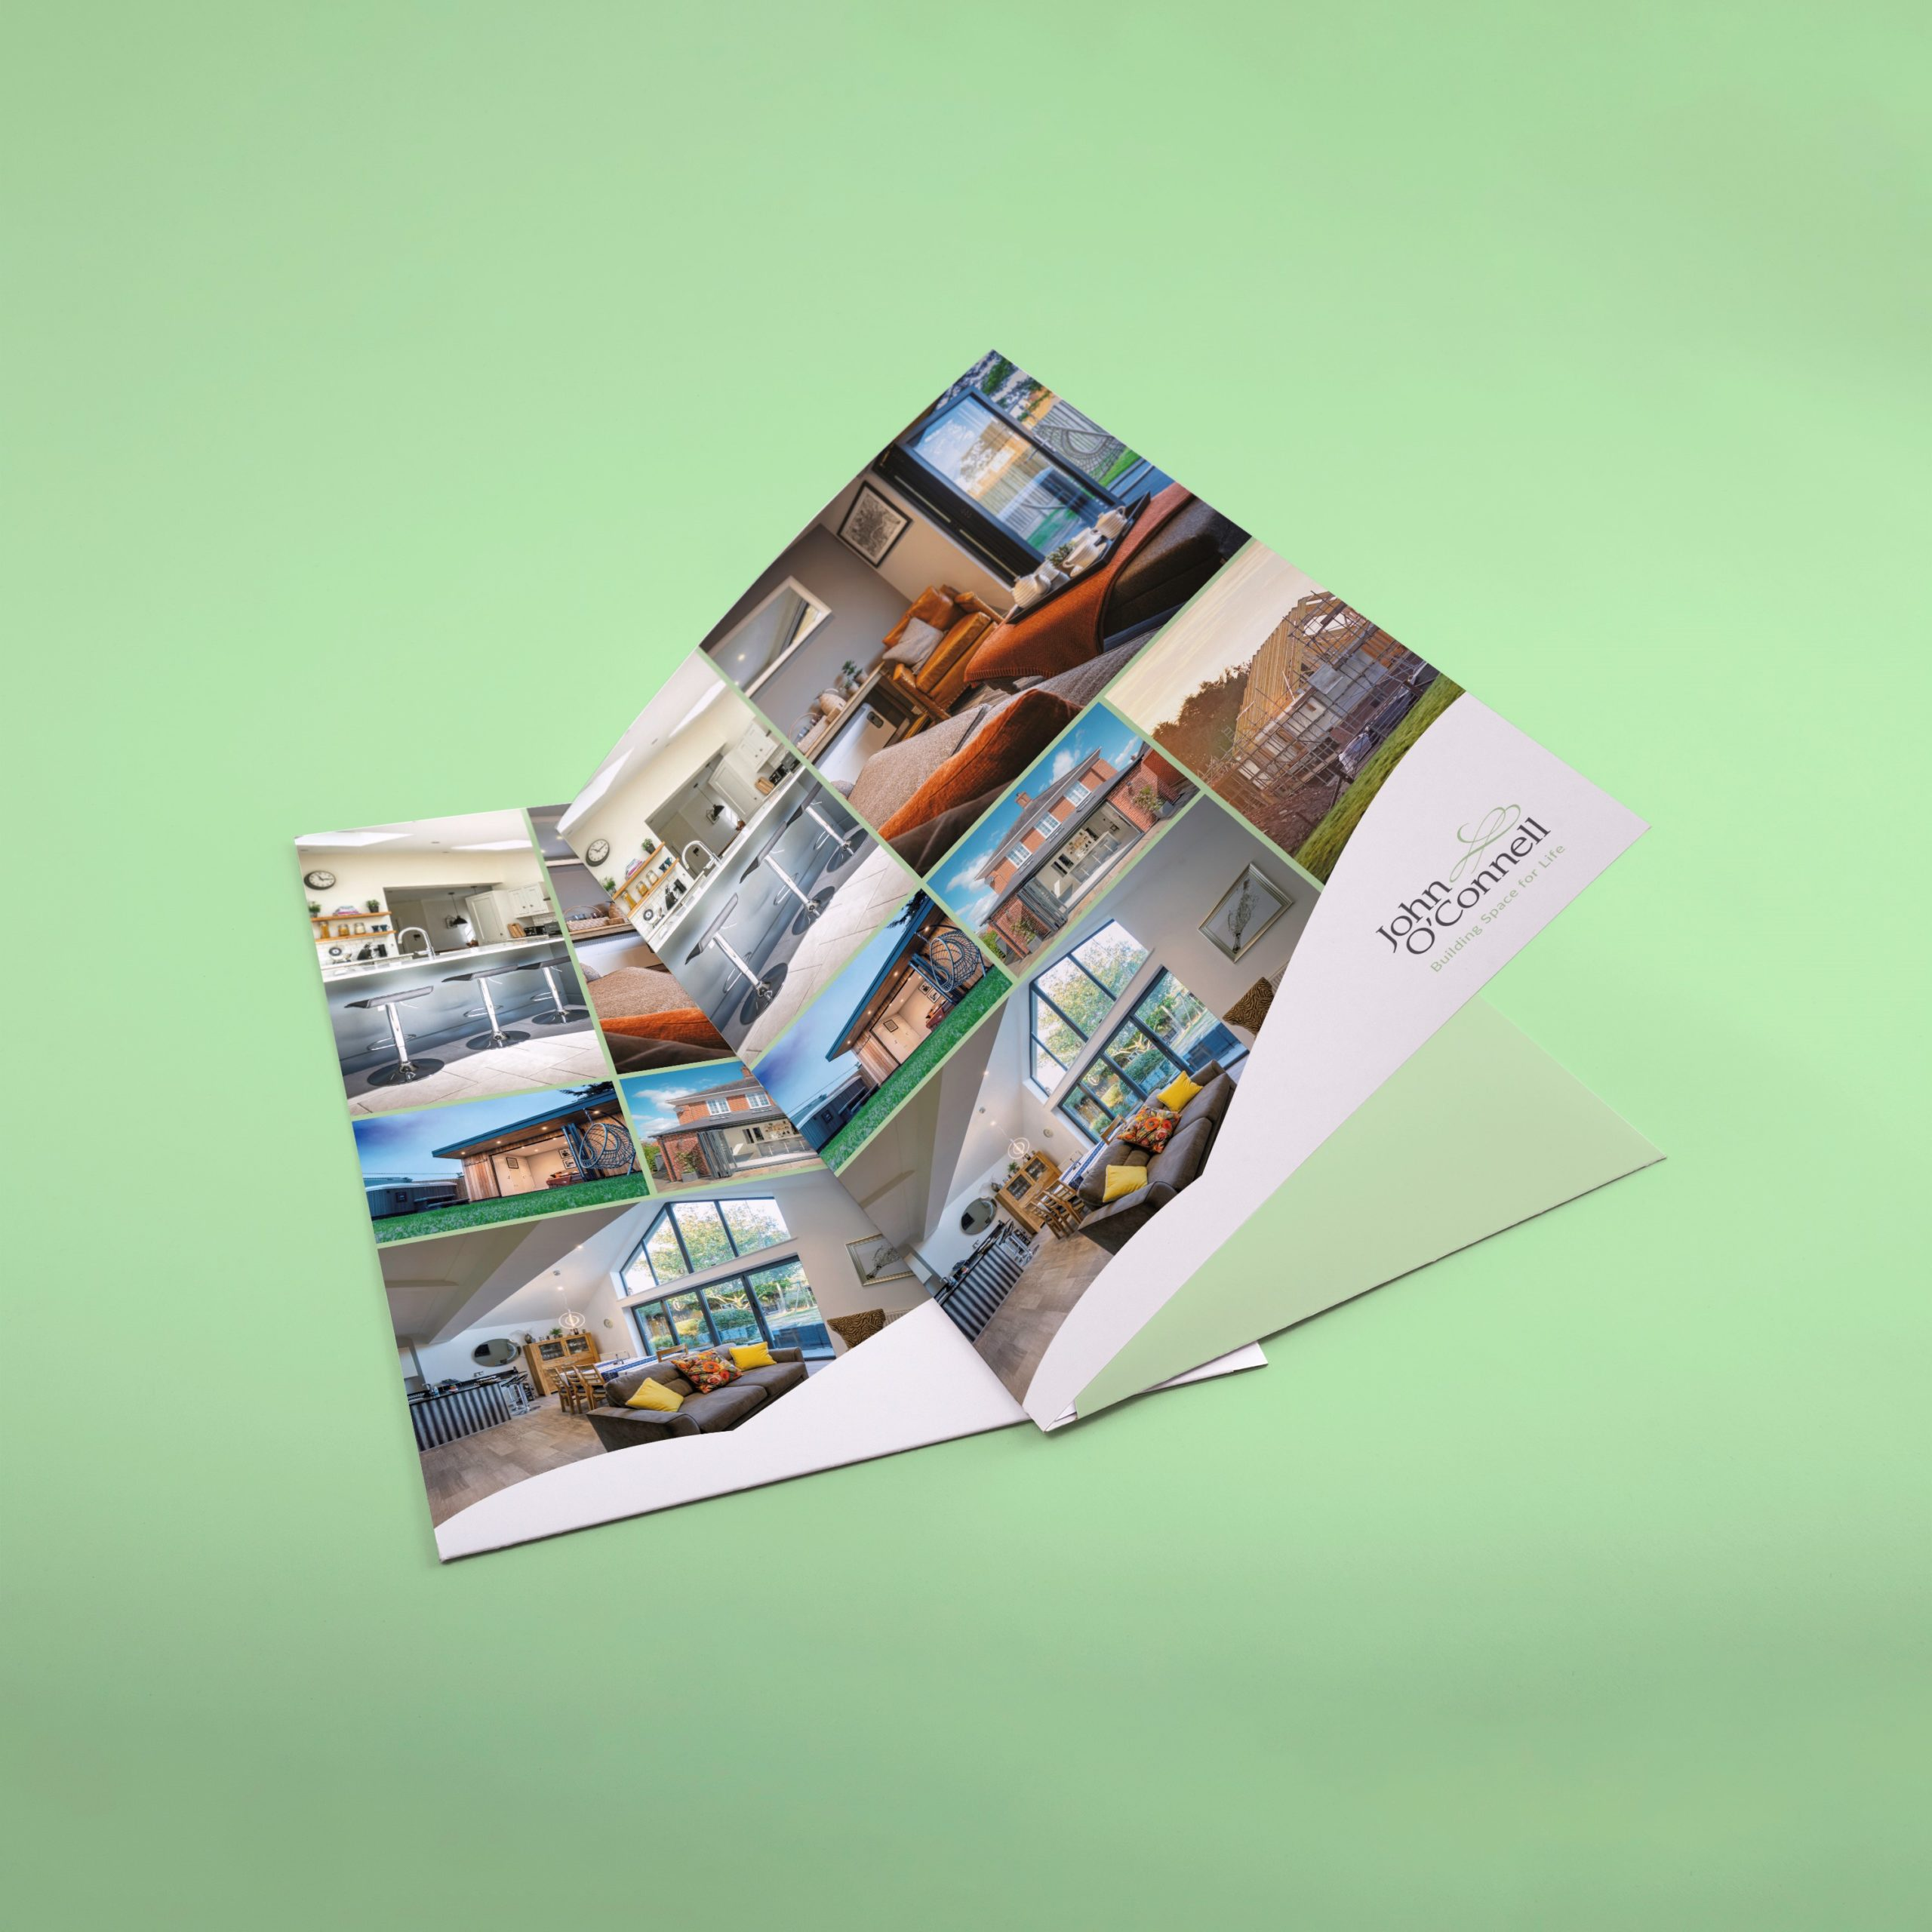 New Marketing Brand Assets for Construction Company